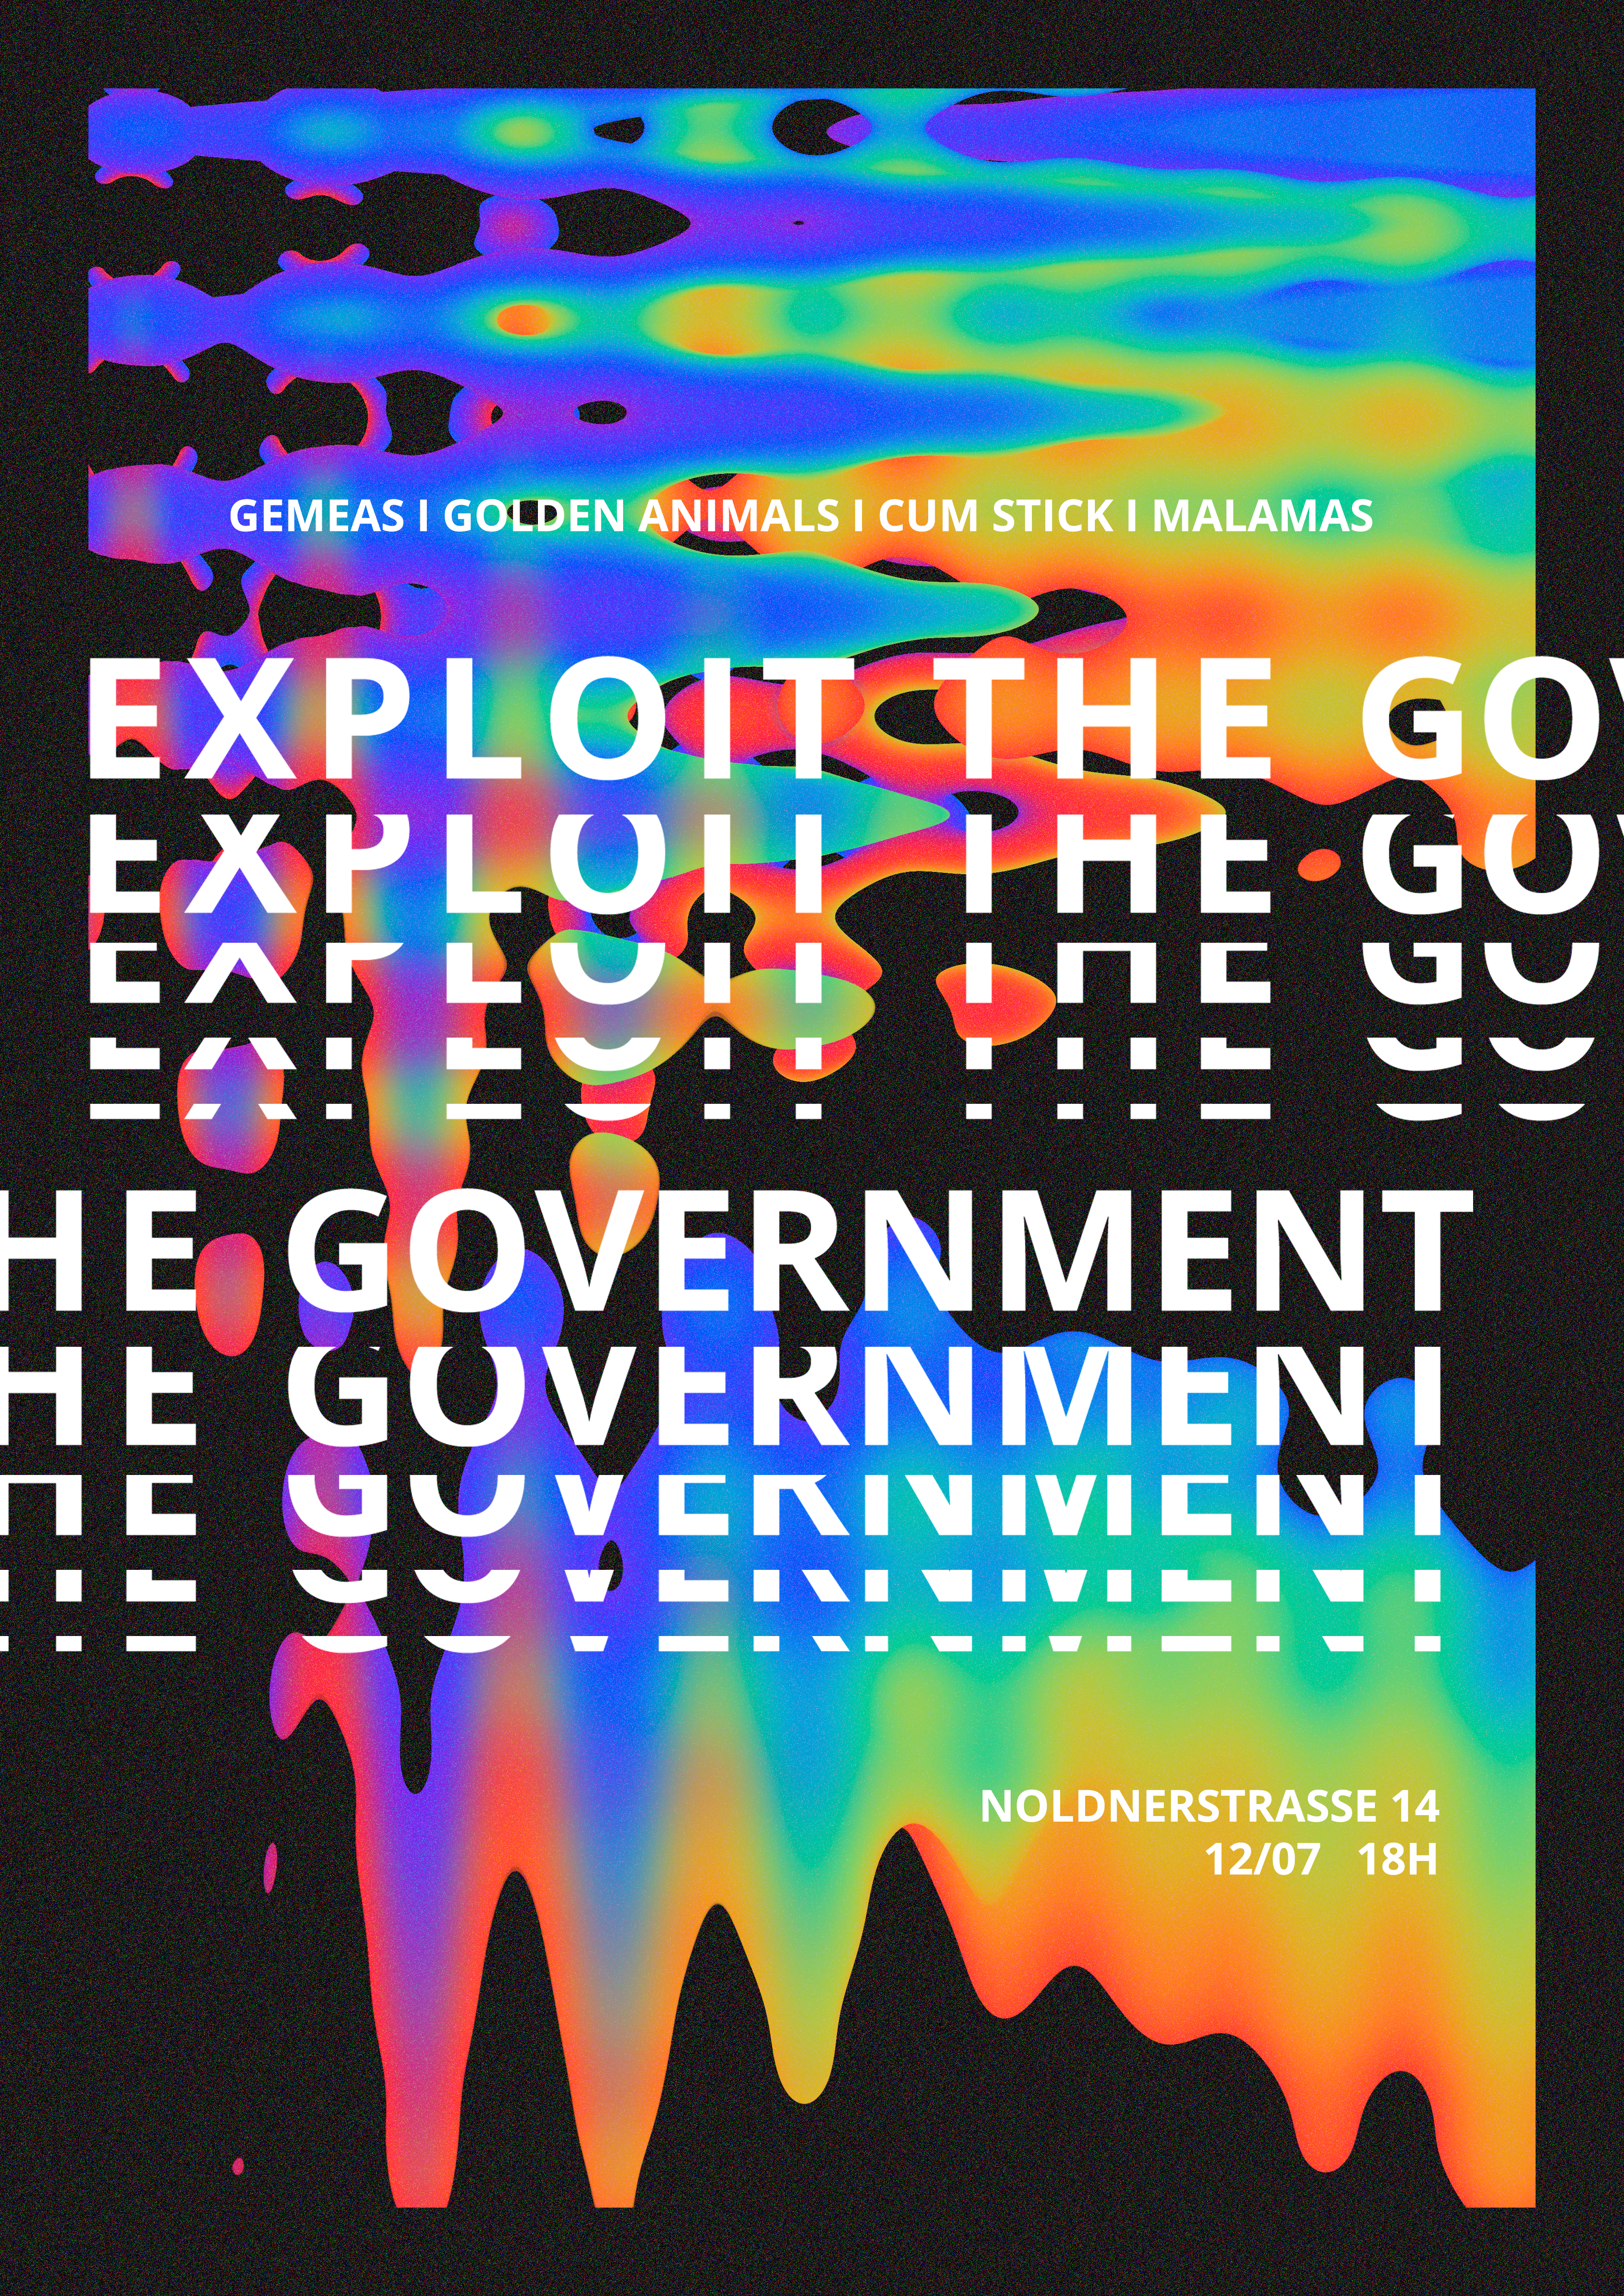 exploit the government